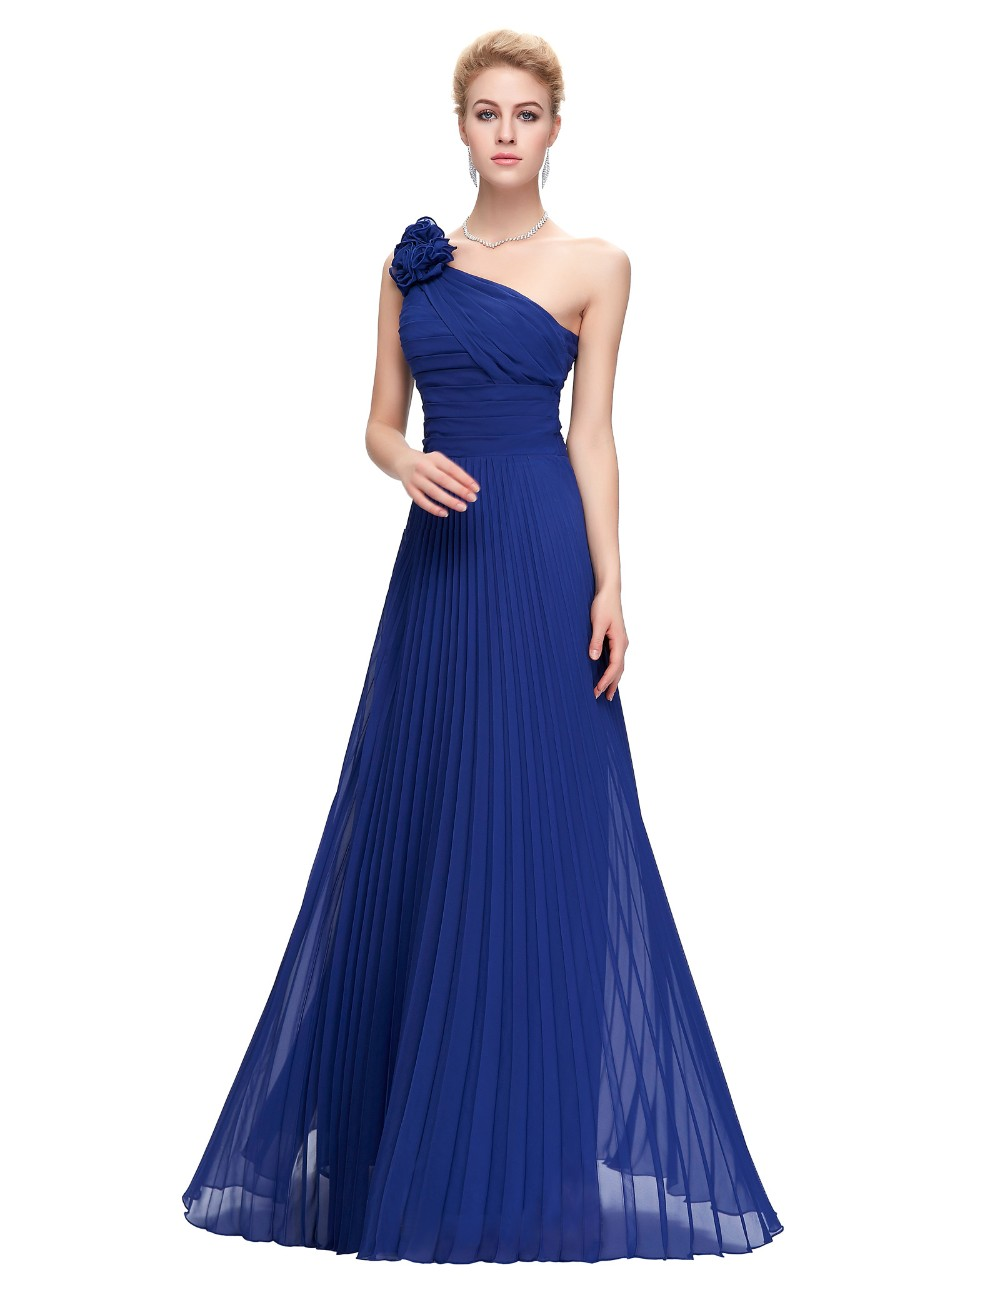 Grace Karin Chiffon Long Evening Dress One Shoulder Pleated Red Green Purple Royal Blue Formal Evening Dress Party Gowns 2018 8